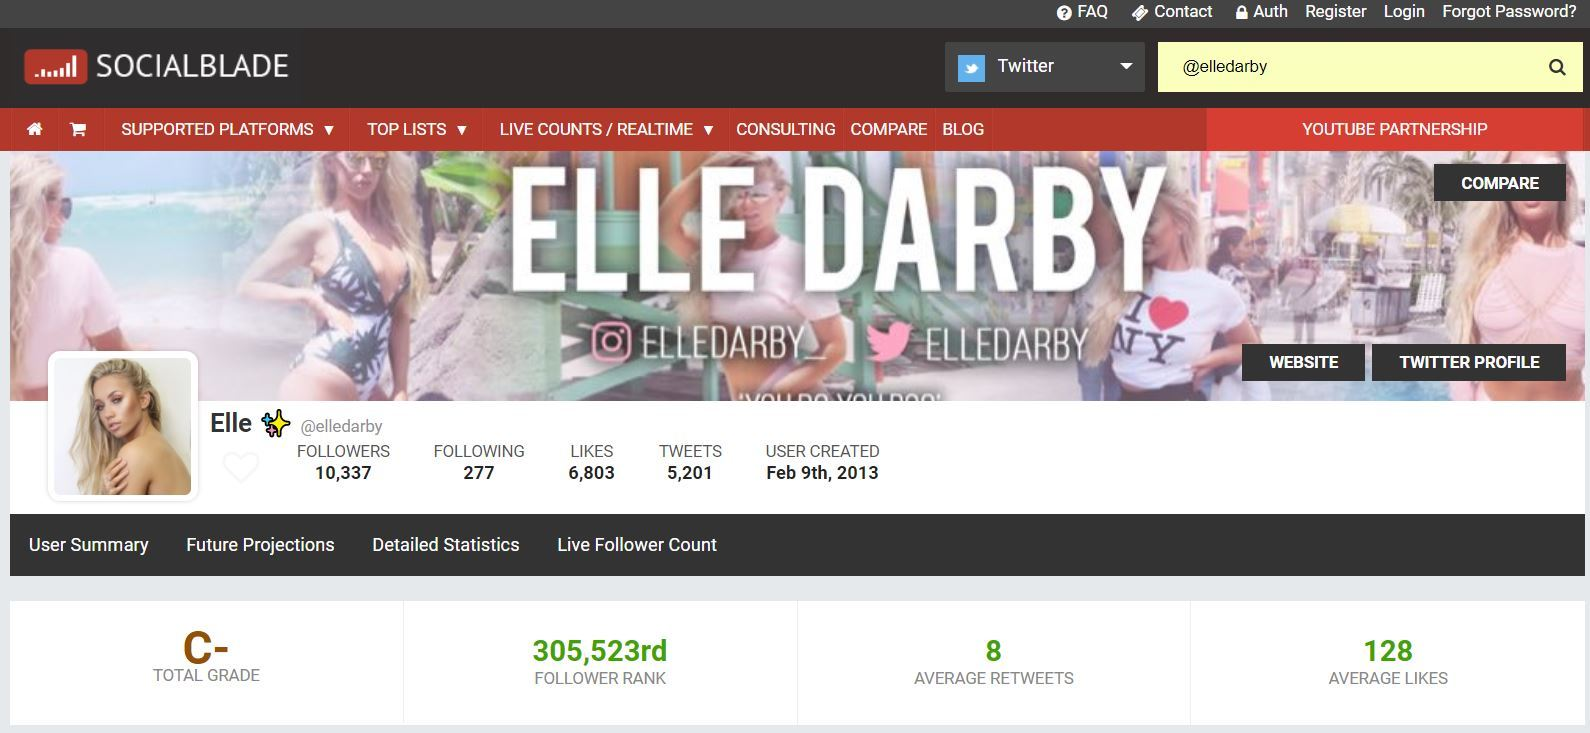 spot fake followers elle darby social blade screenshot